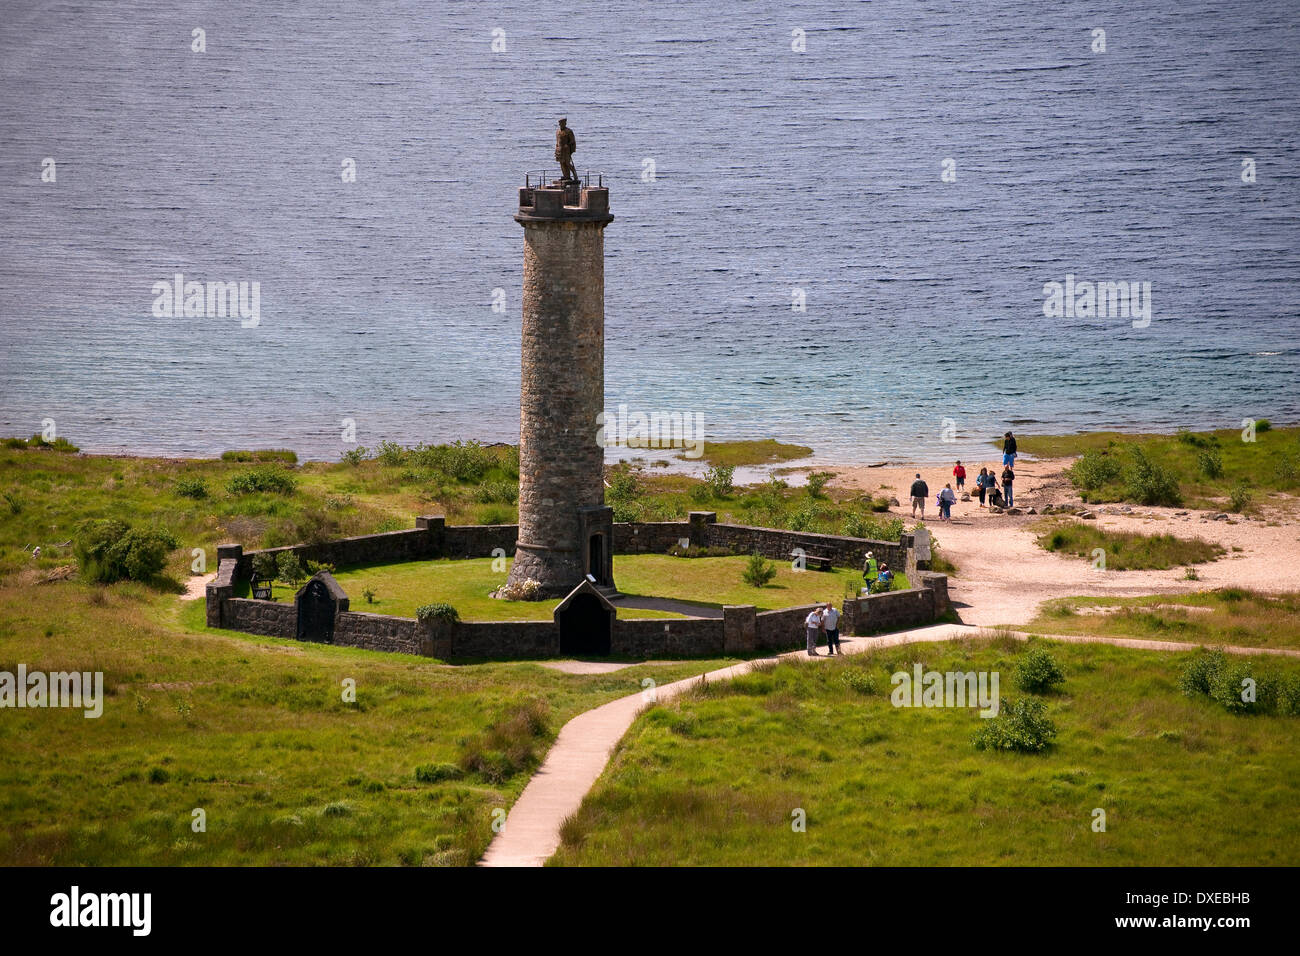 Looking down onto the Glenfinnan monument on the shore of Loch Shiel, lochaber,west highlands - Stock Image